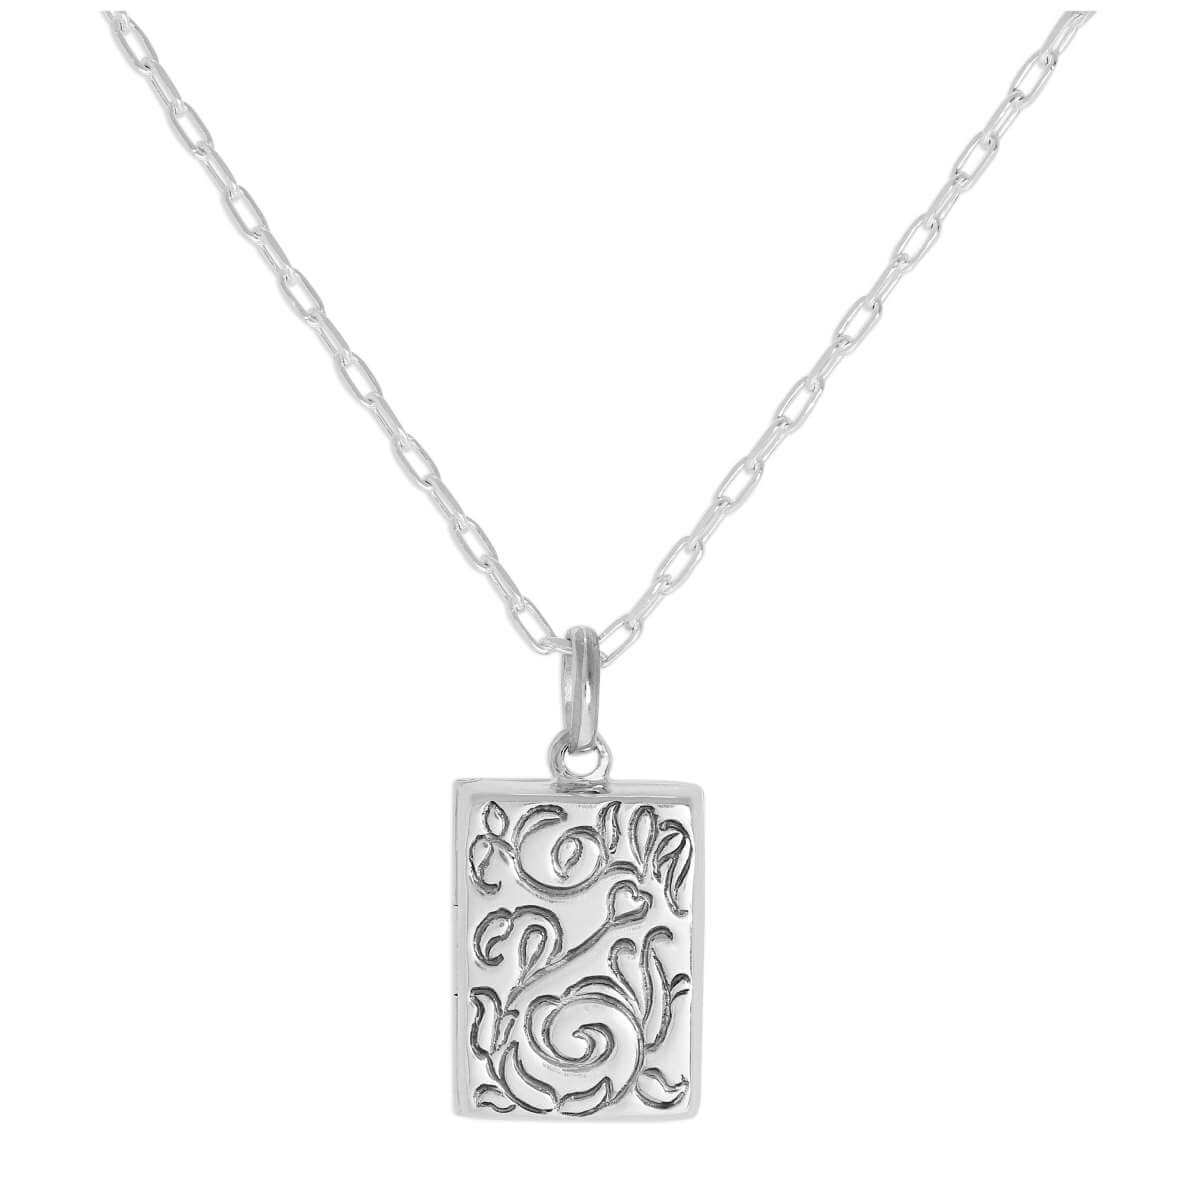 Sterling Silver Rectangular Locket with Floral Design on Chain 16 - 24 Inches